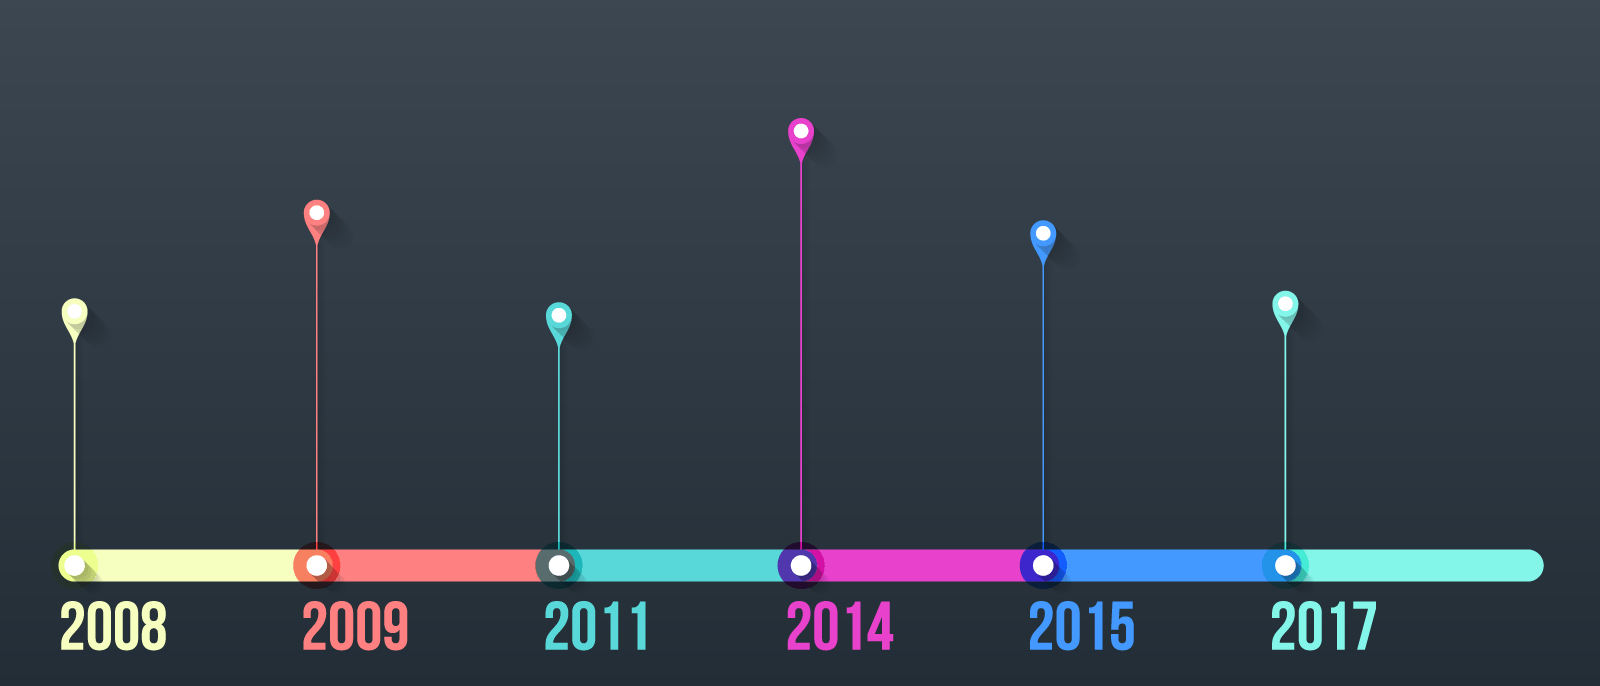 How to Make a Timeline in Word | Lucidchart Blog